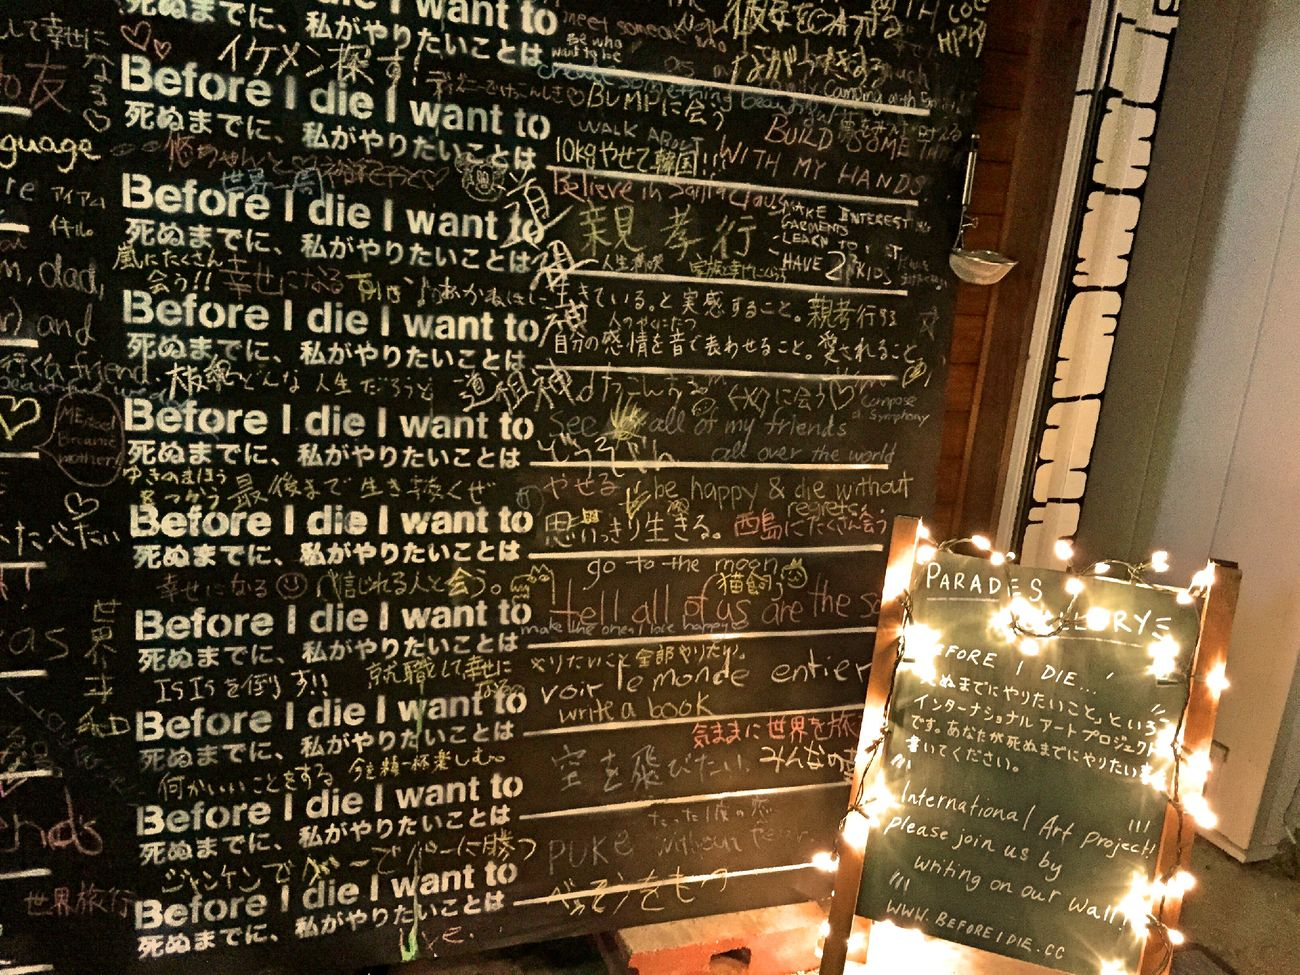 Before I die.... ?? I wonder what I want to do... Message My Life 考えごとしながら帰り道。。こんなの発見?